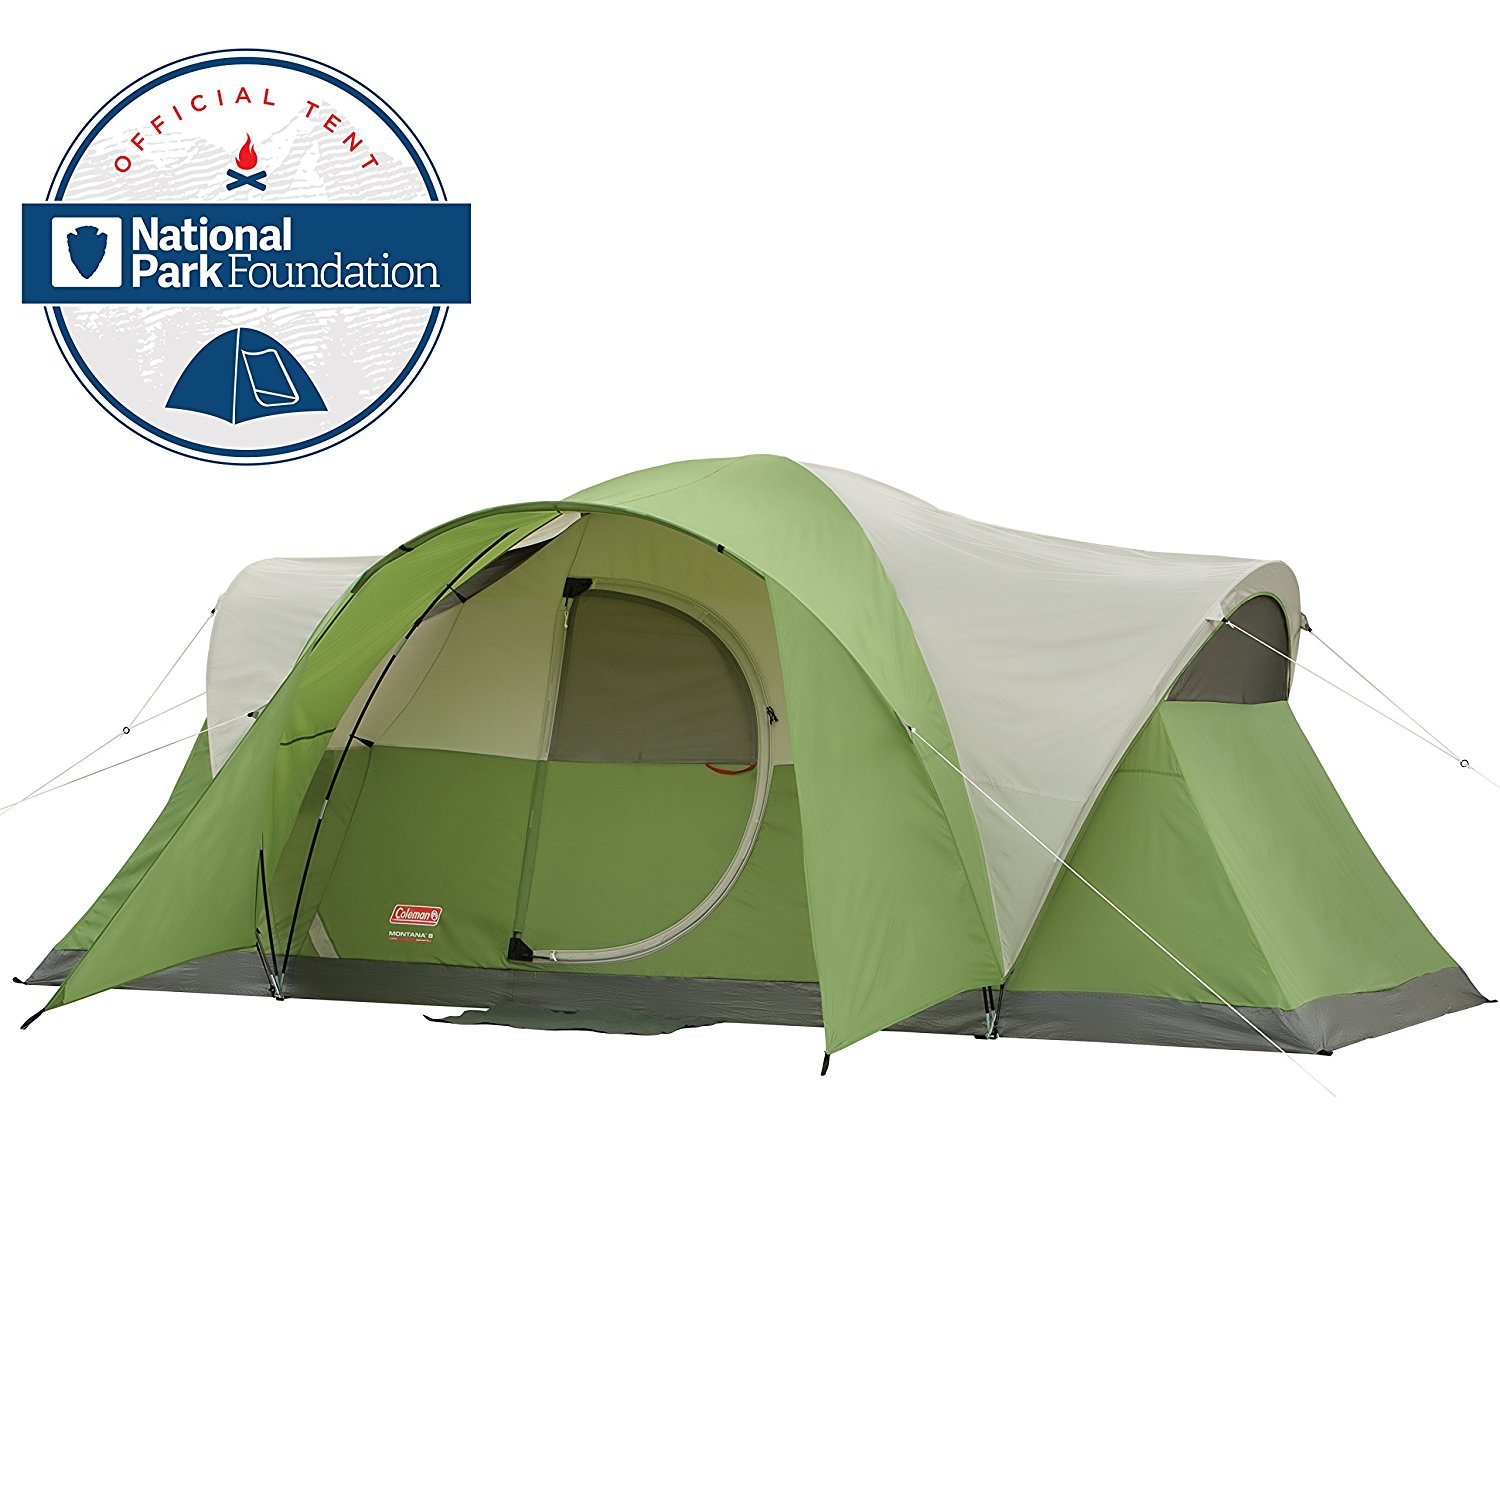 sc 1 st  My News 8 : best large tent - memphite.com